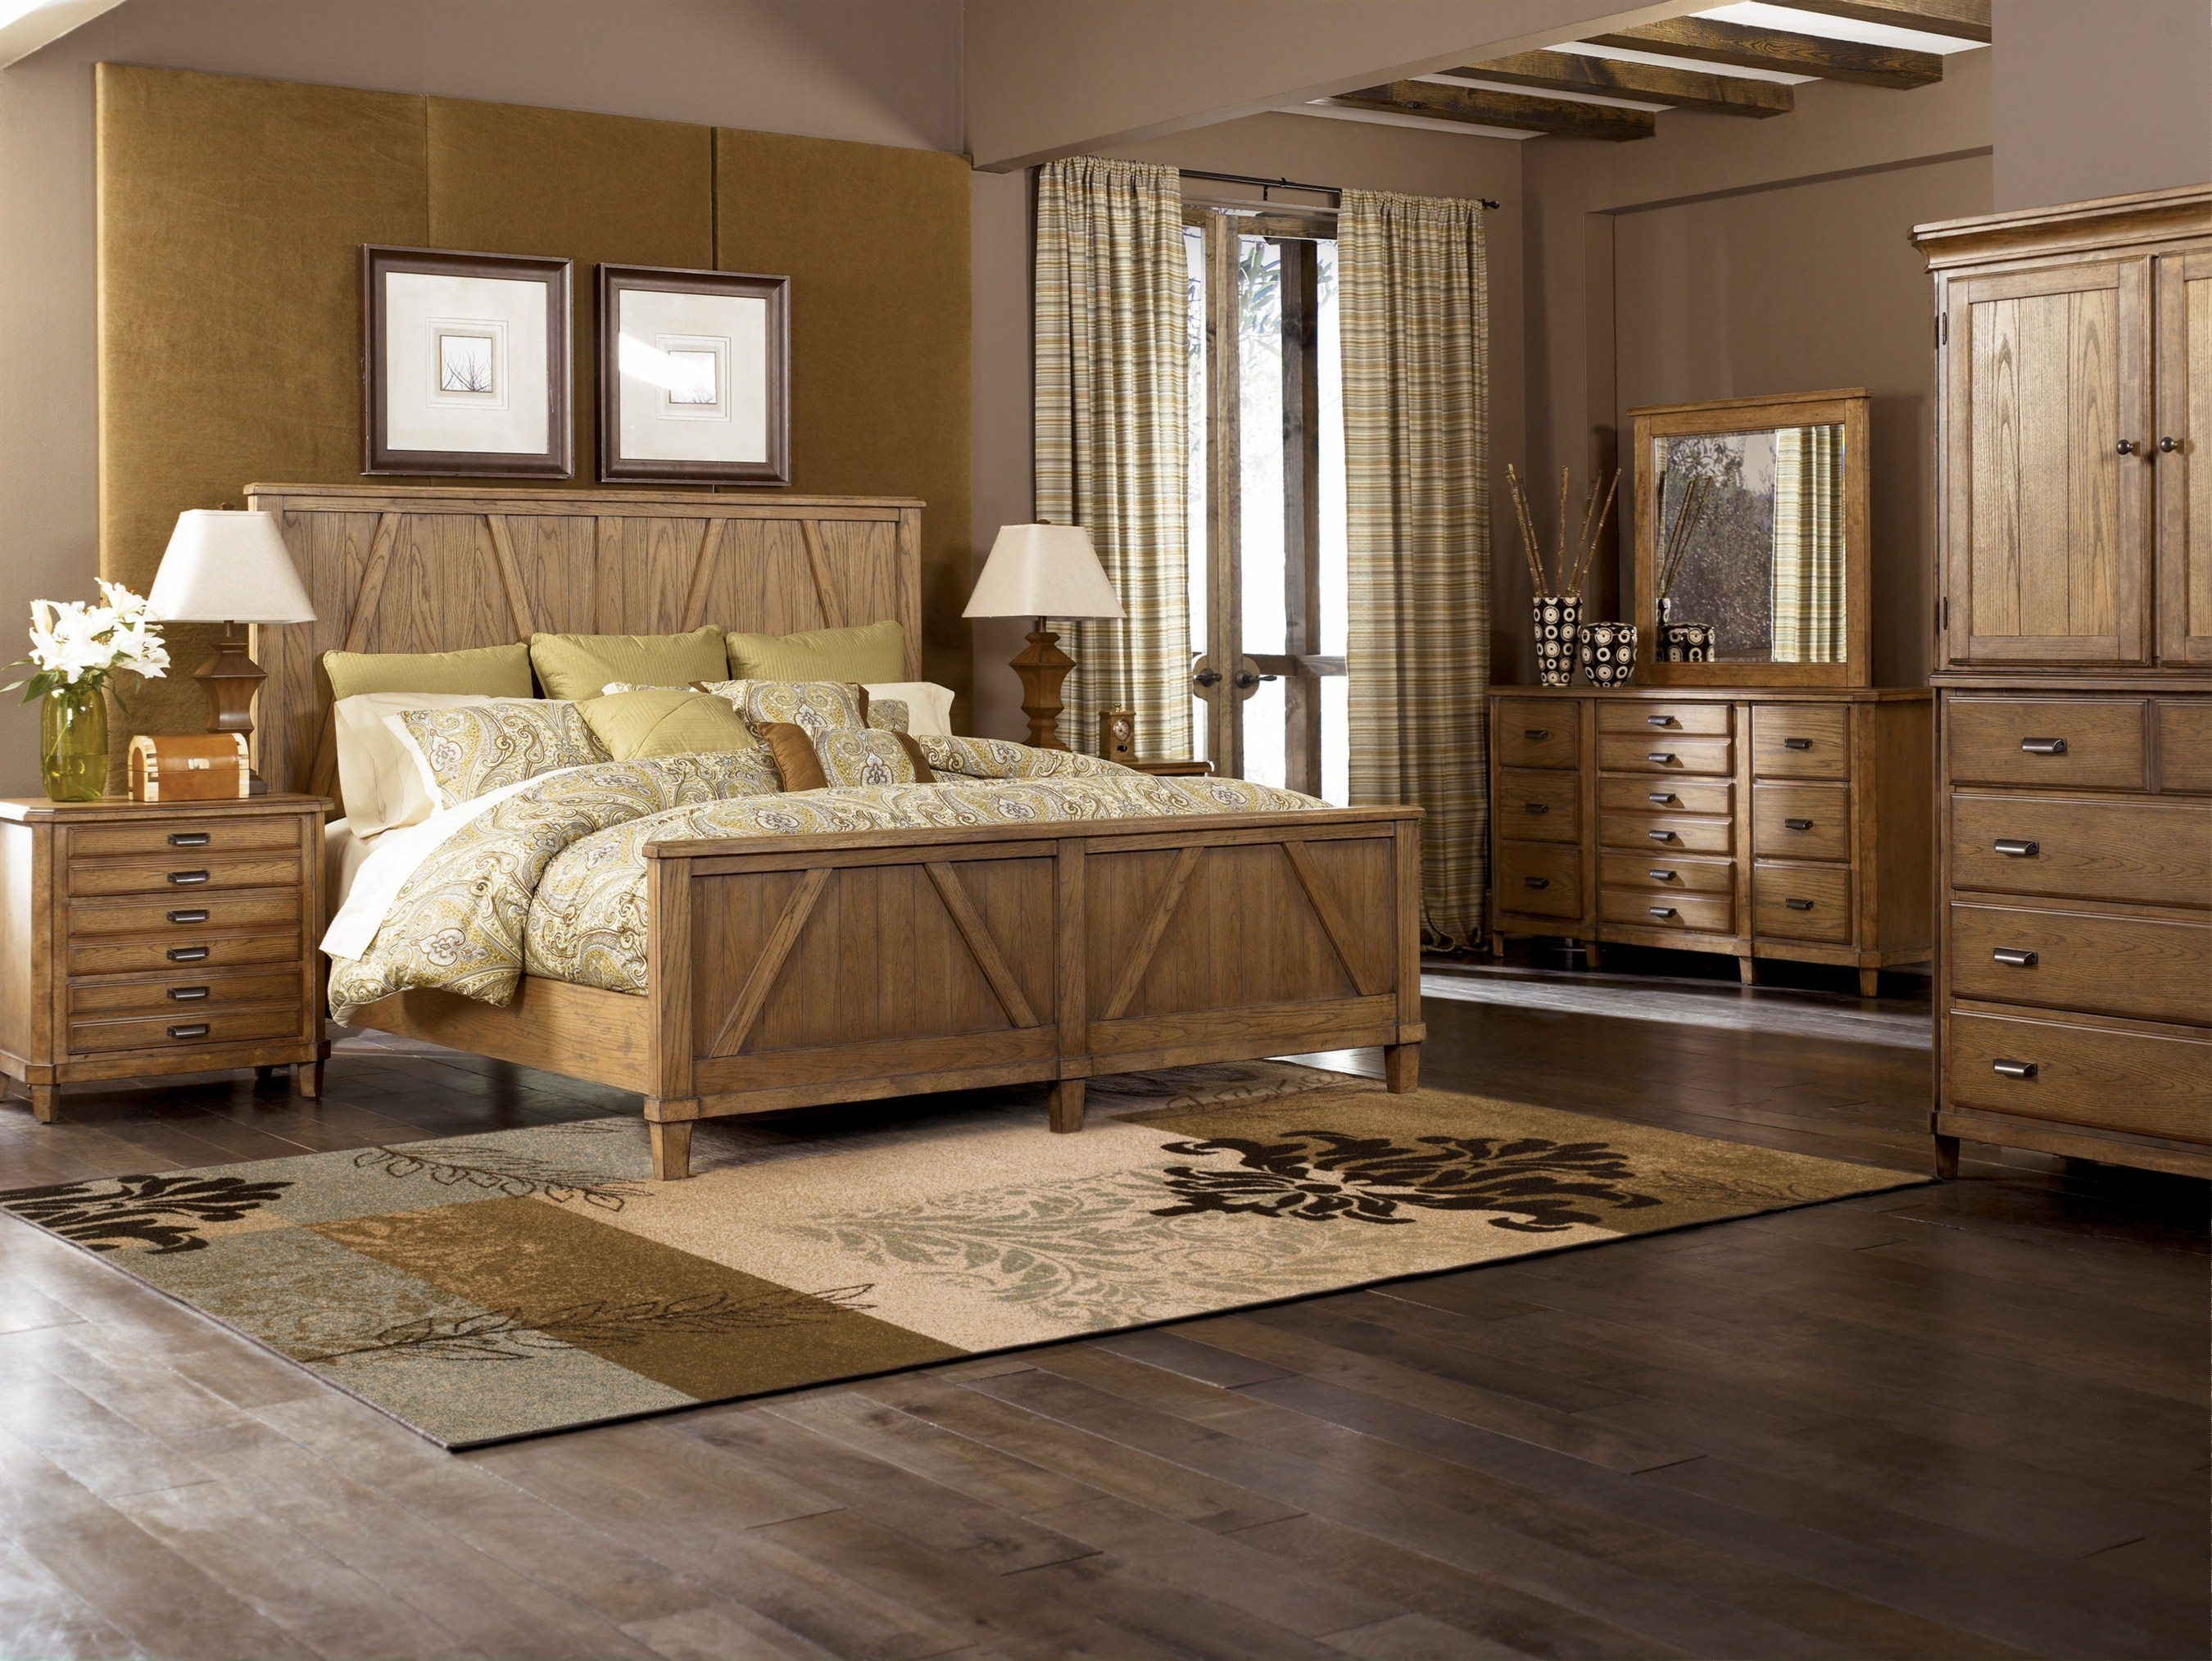 Photo of aspen bedroom furniture